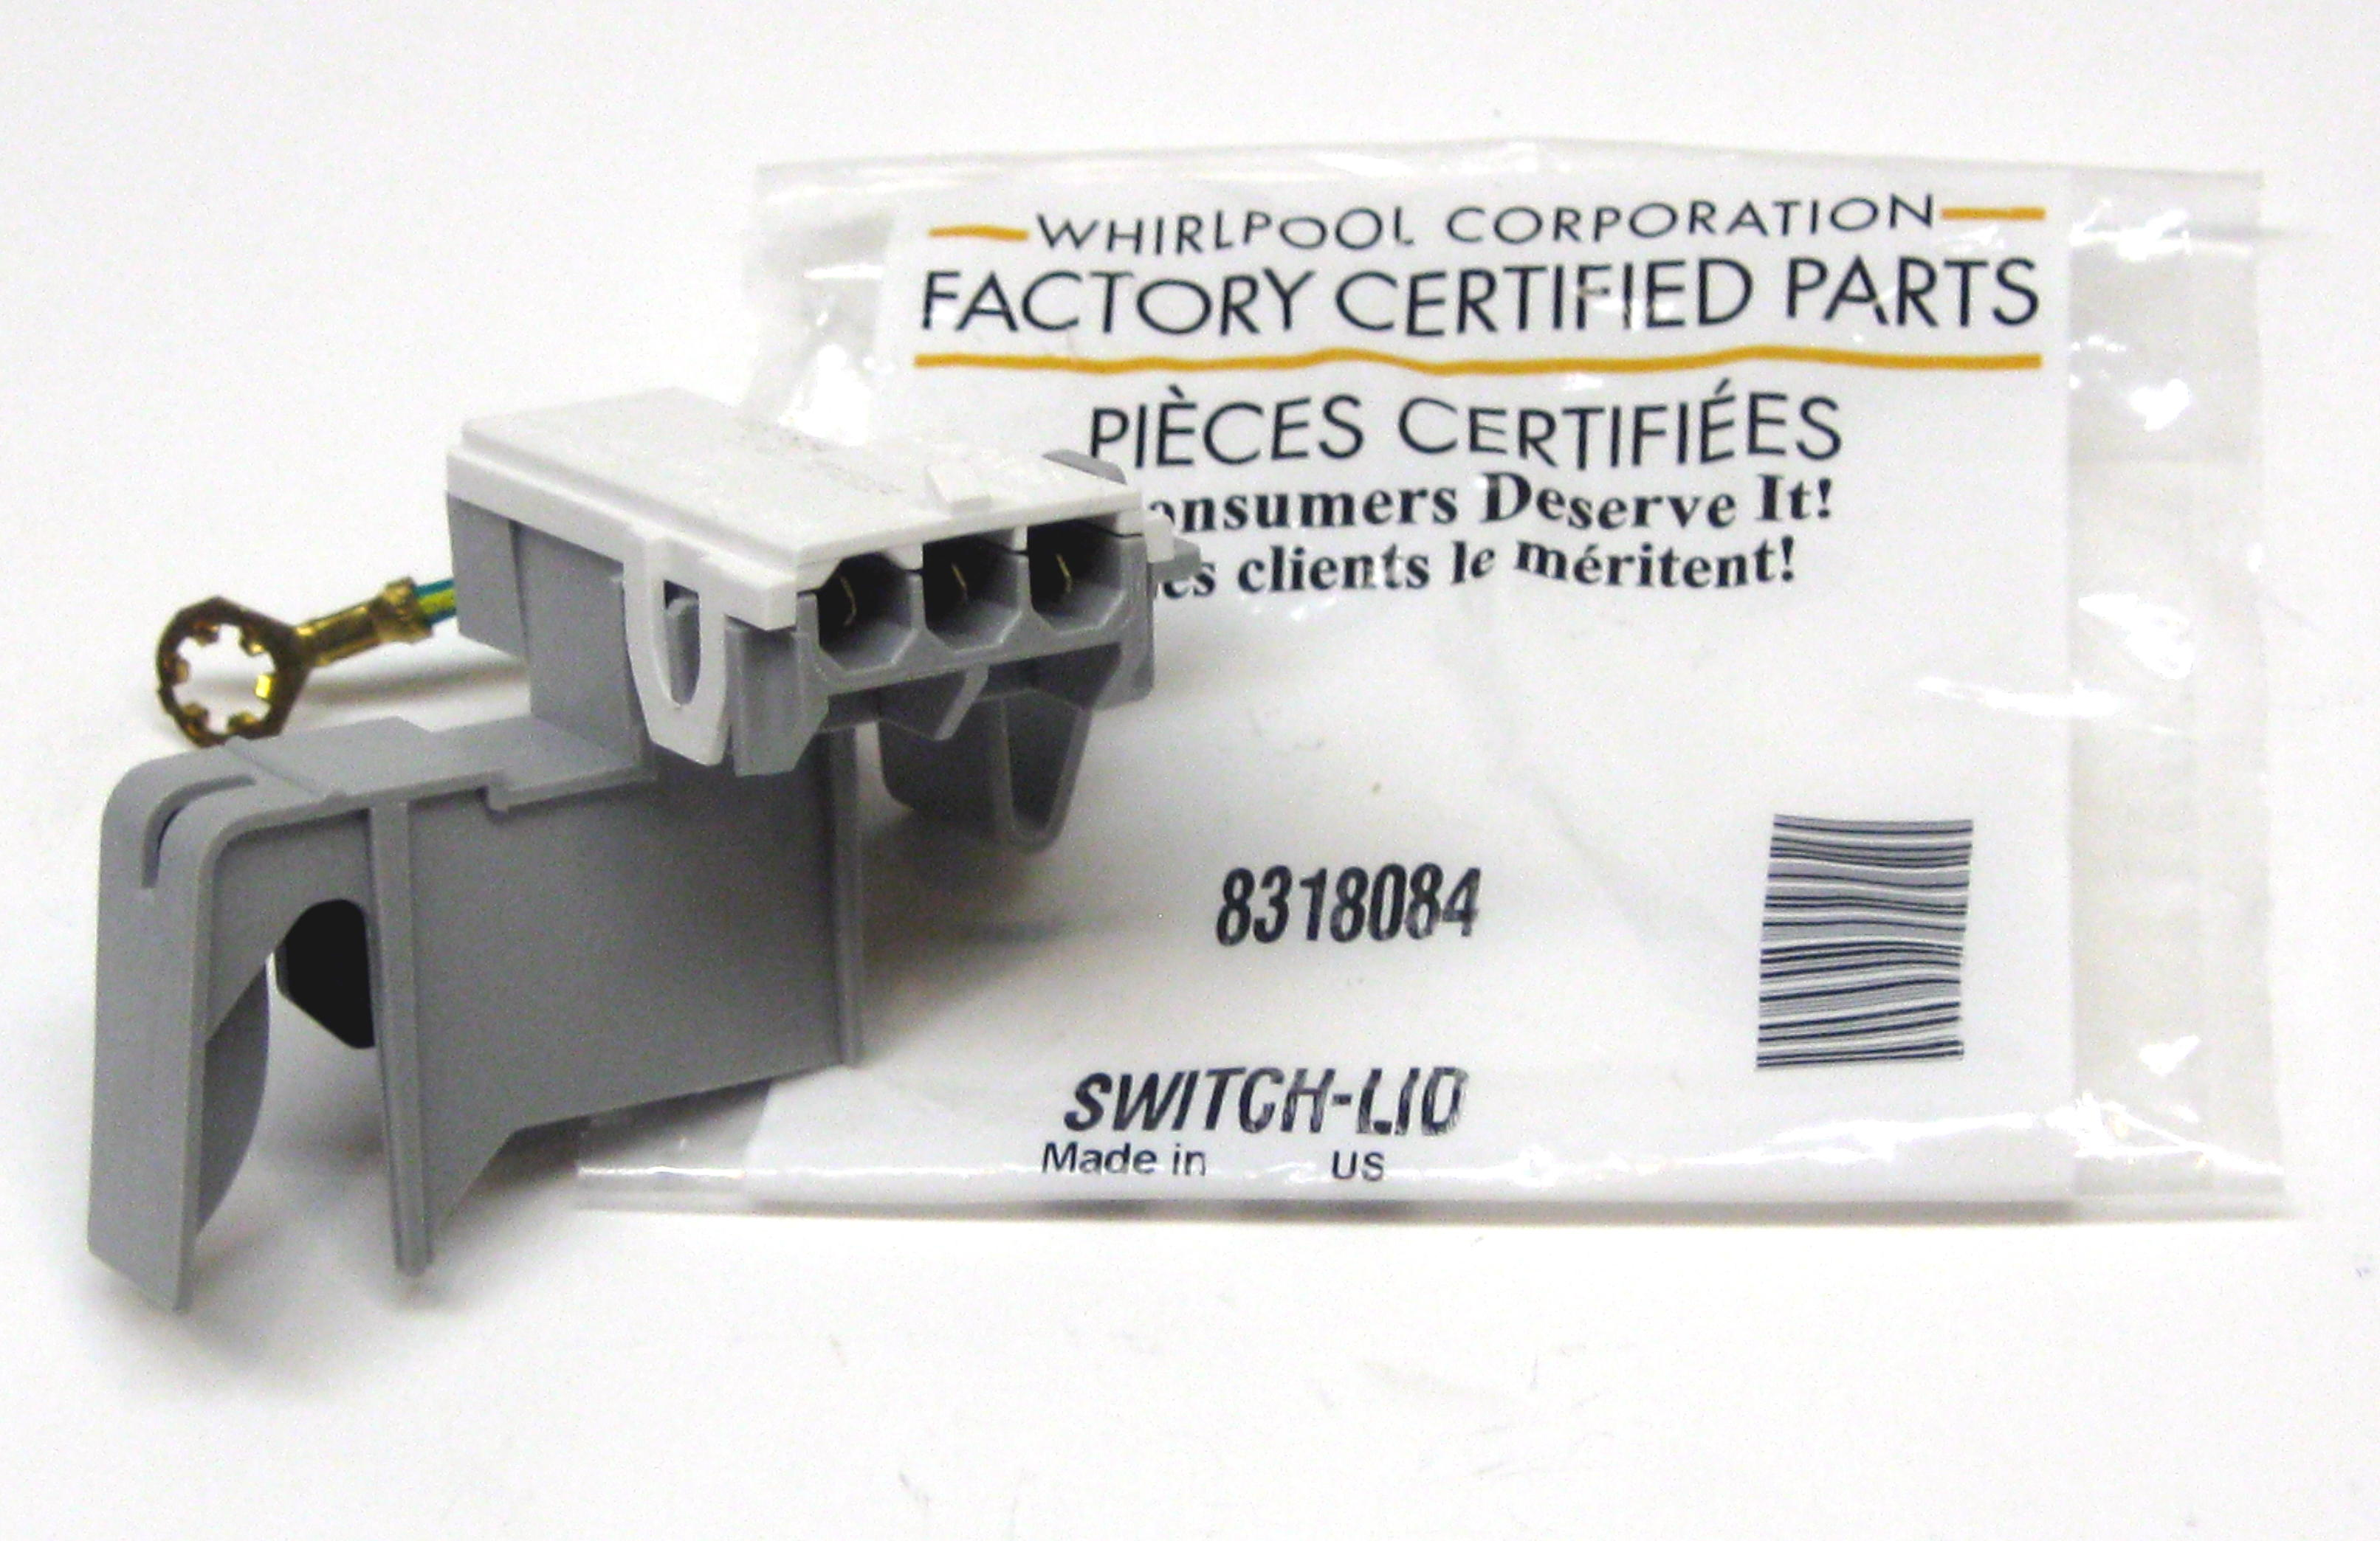 Whirlpool Dishwasher Parts Canada Details About Wp8318084 Oem Whirlpool Kenmore Roper Washer Lid Switch Ap3180933 Ps886960